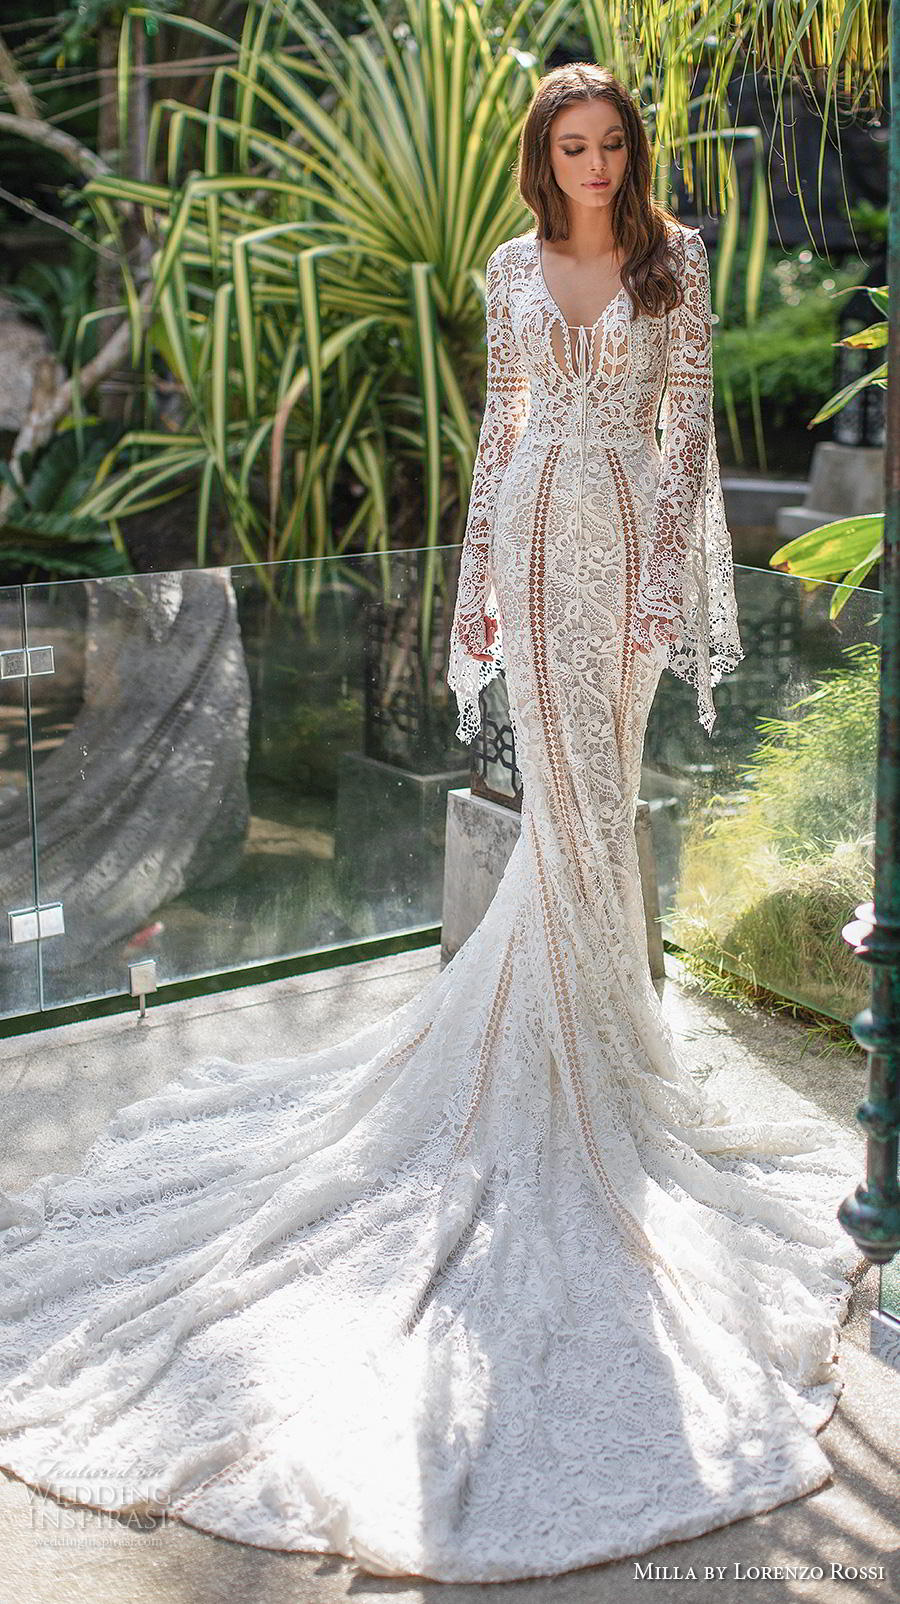 lorenzo rossi 2019 milla bridal long bell sleeves v neck full embellishment elegant bohemian fit and flare wedding dress covered lace back royal train (20) mv